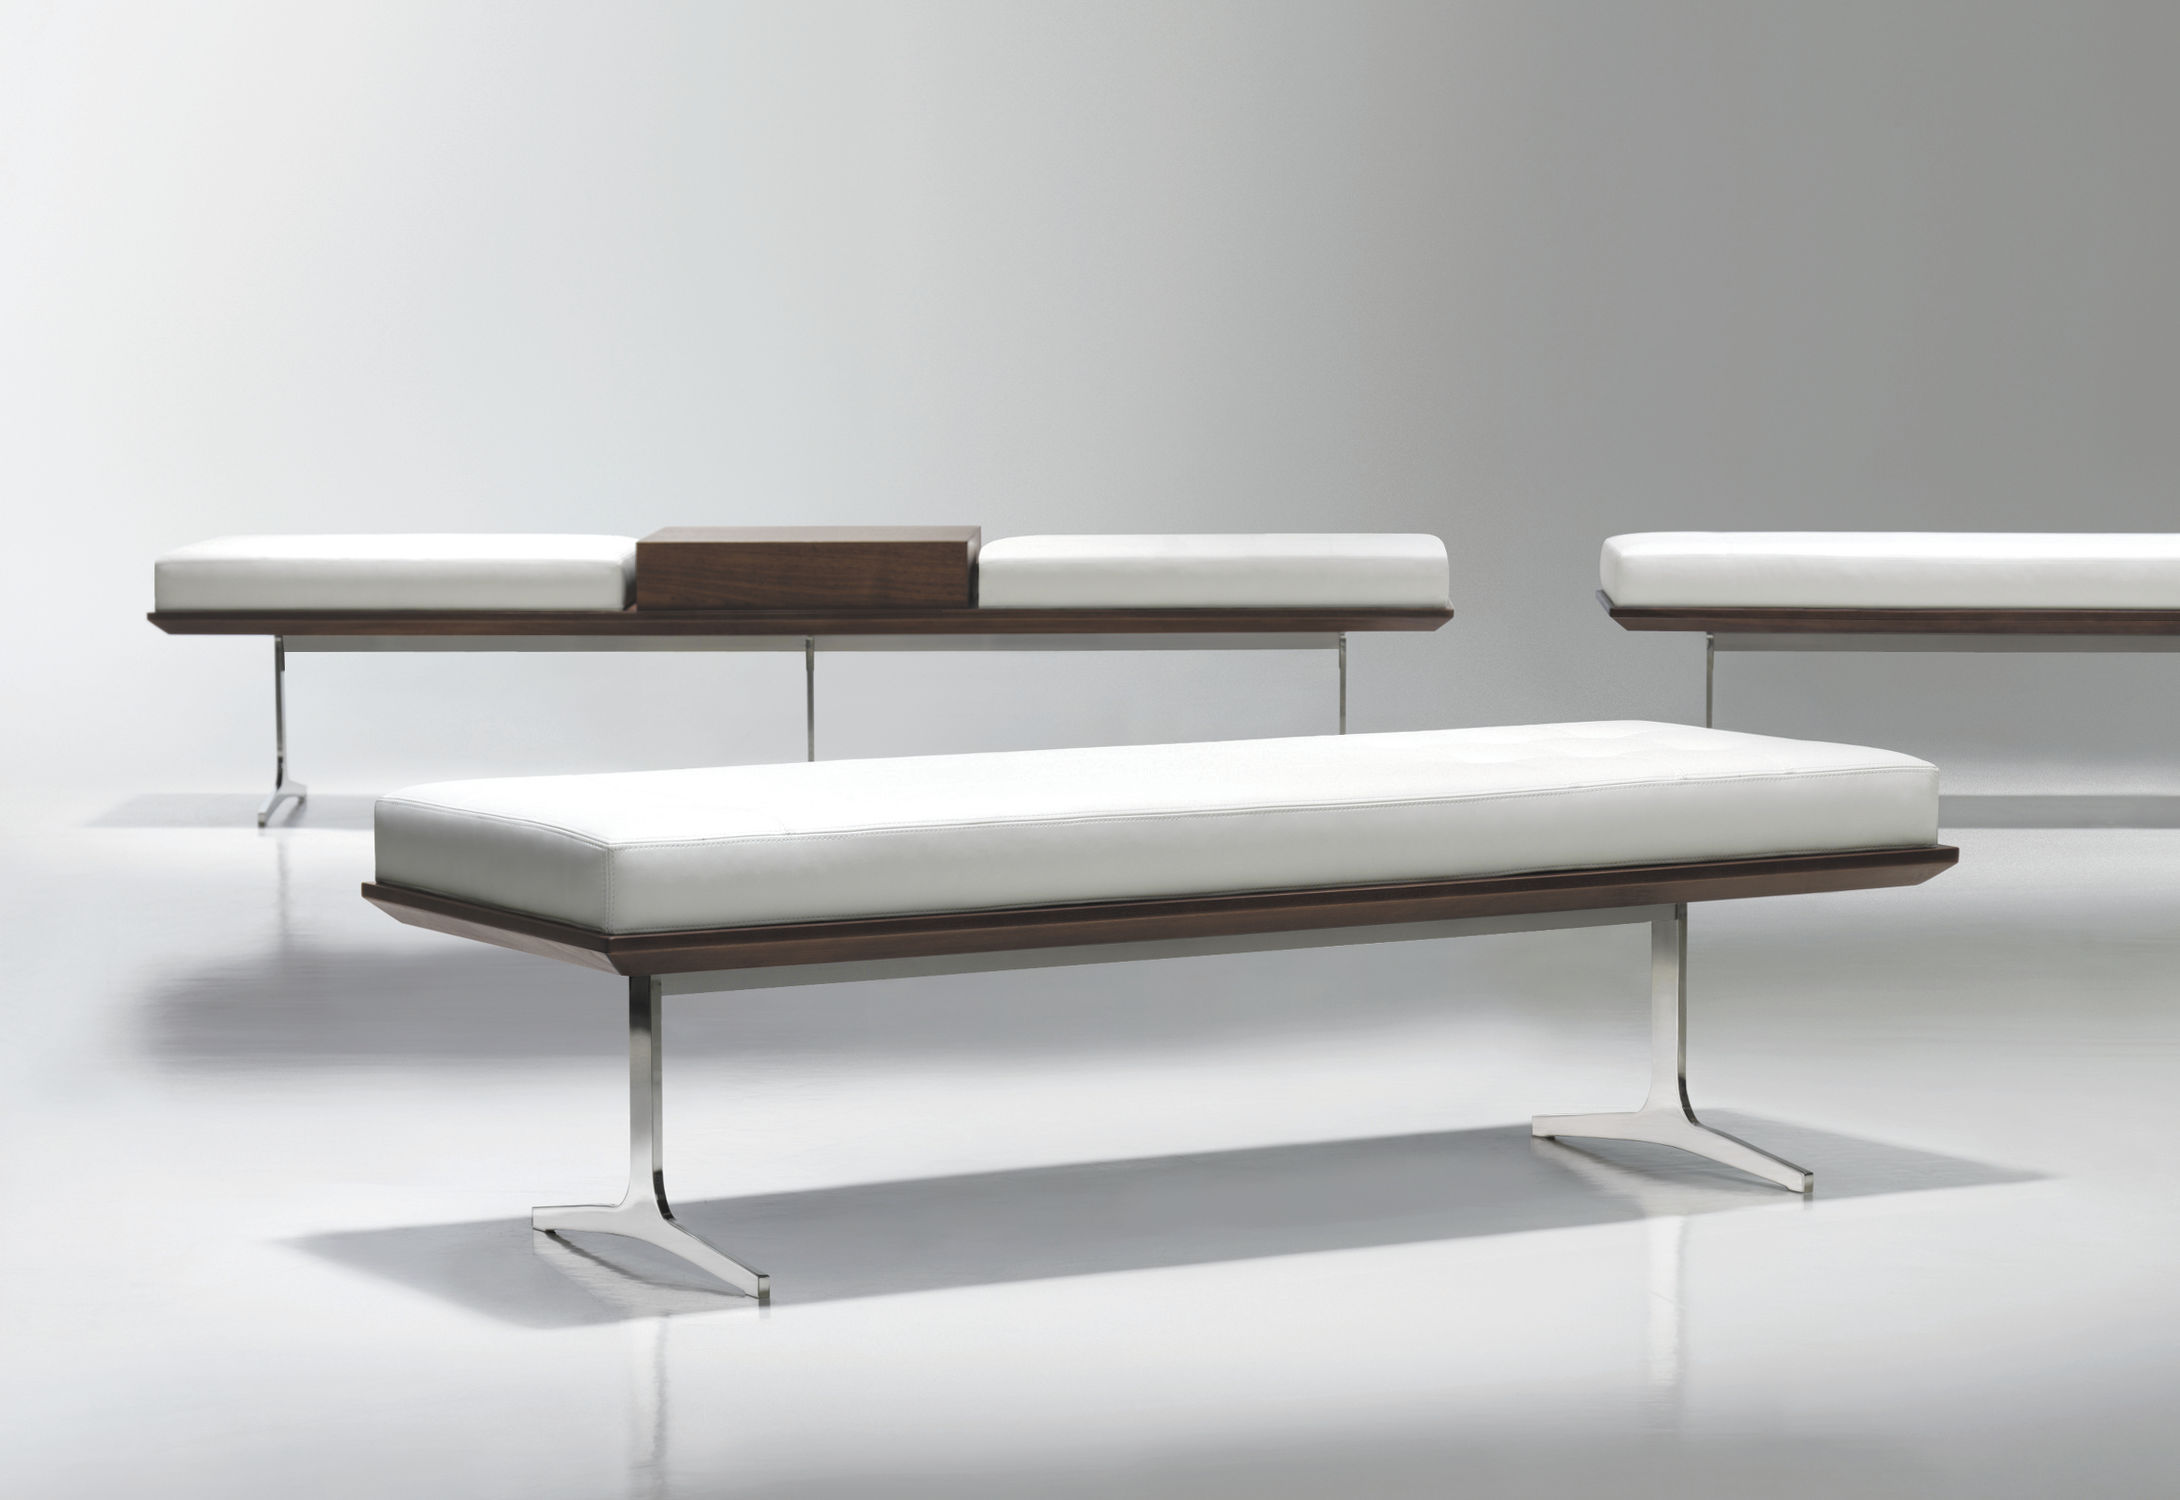 Contemporary upholstered bench   wooden   metal   by Arik Levy   ARGON. Contemporary upholstered bench   wooden   metal   by Arik Levy